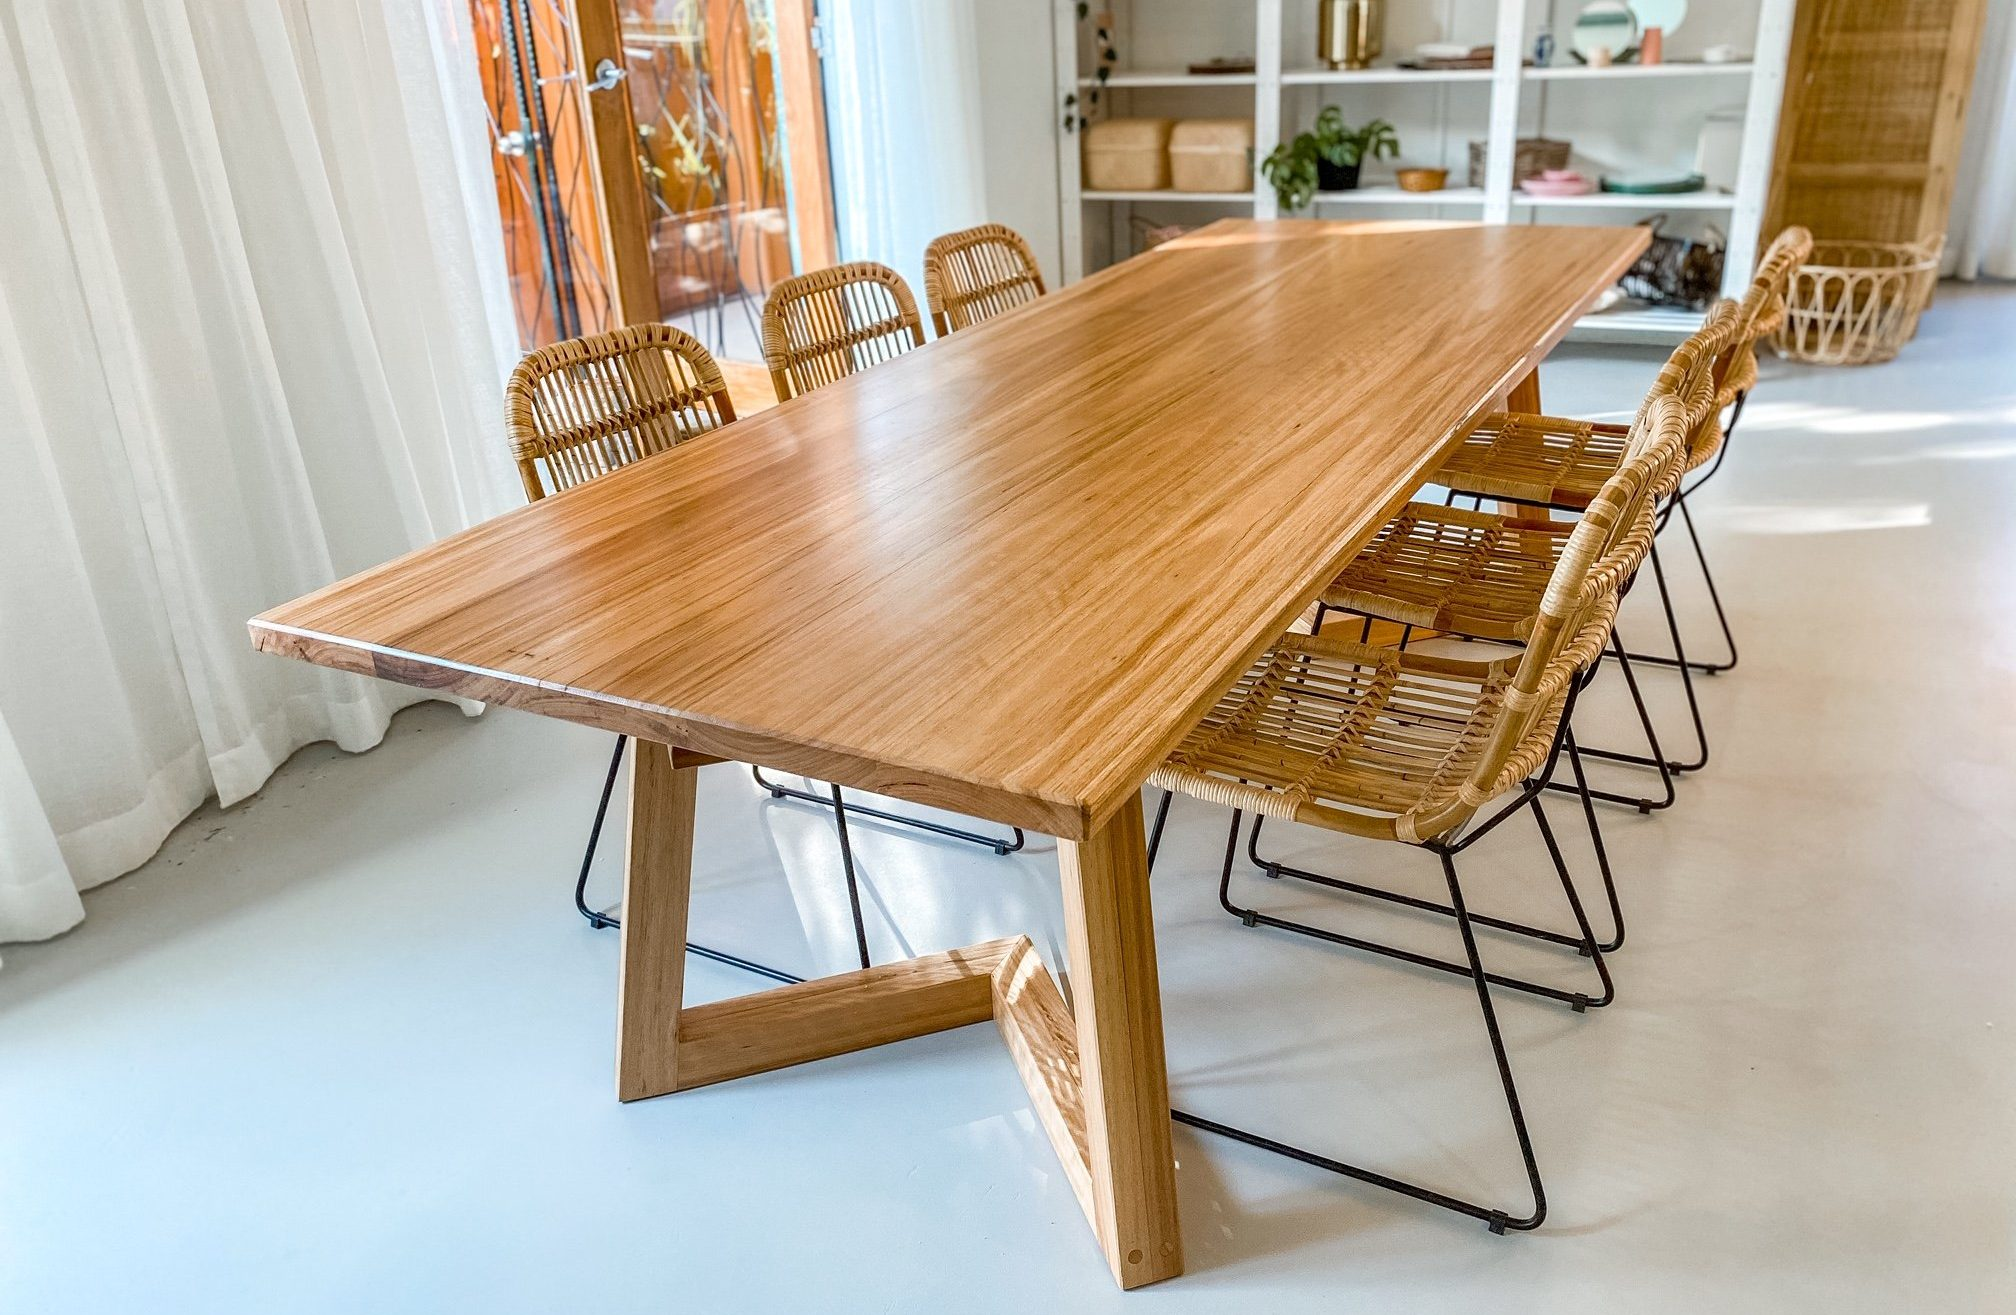 Handmade timber dining table